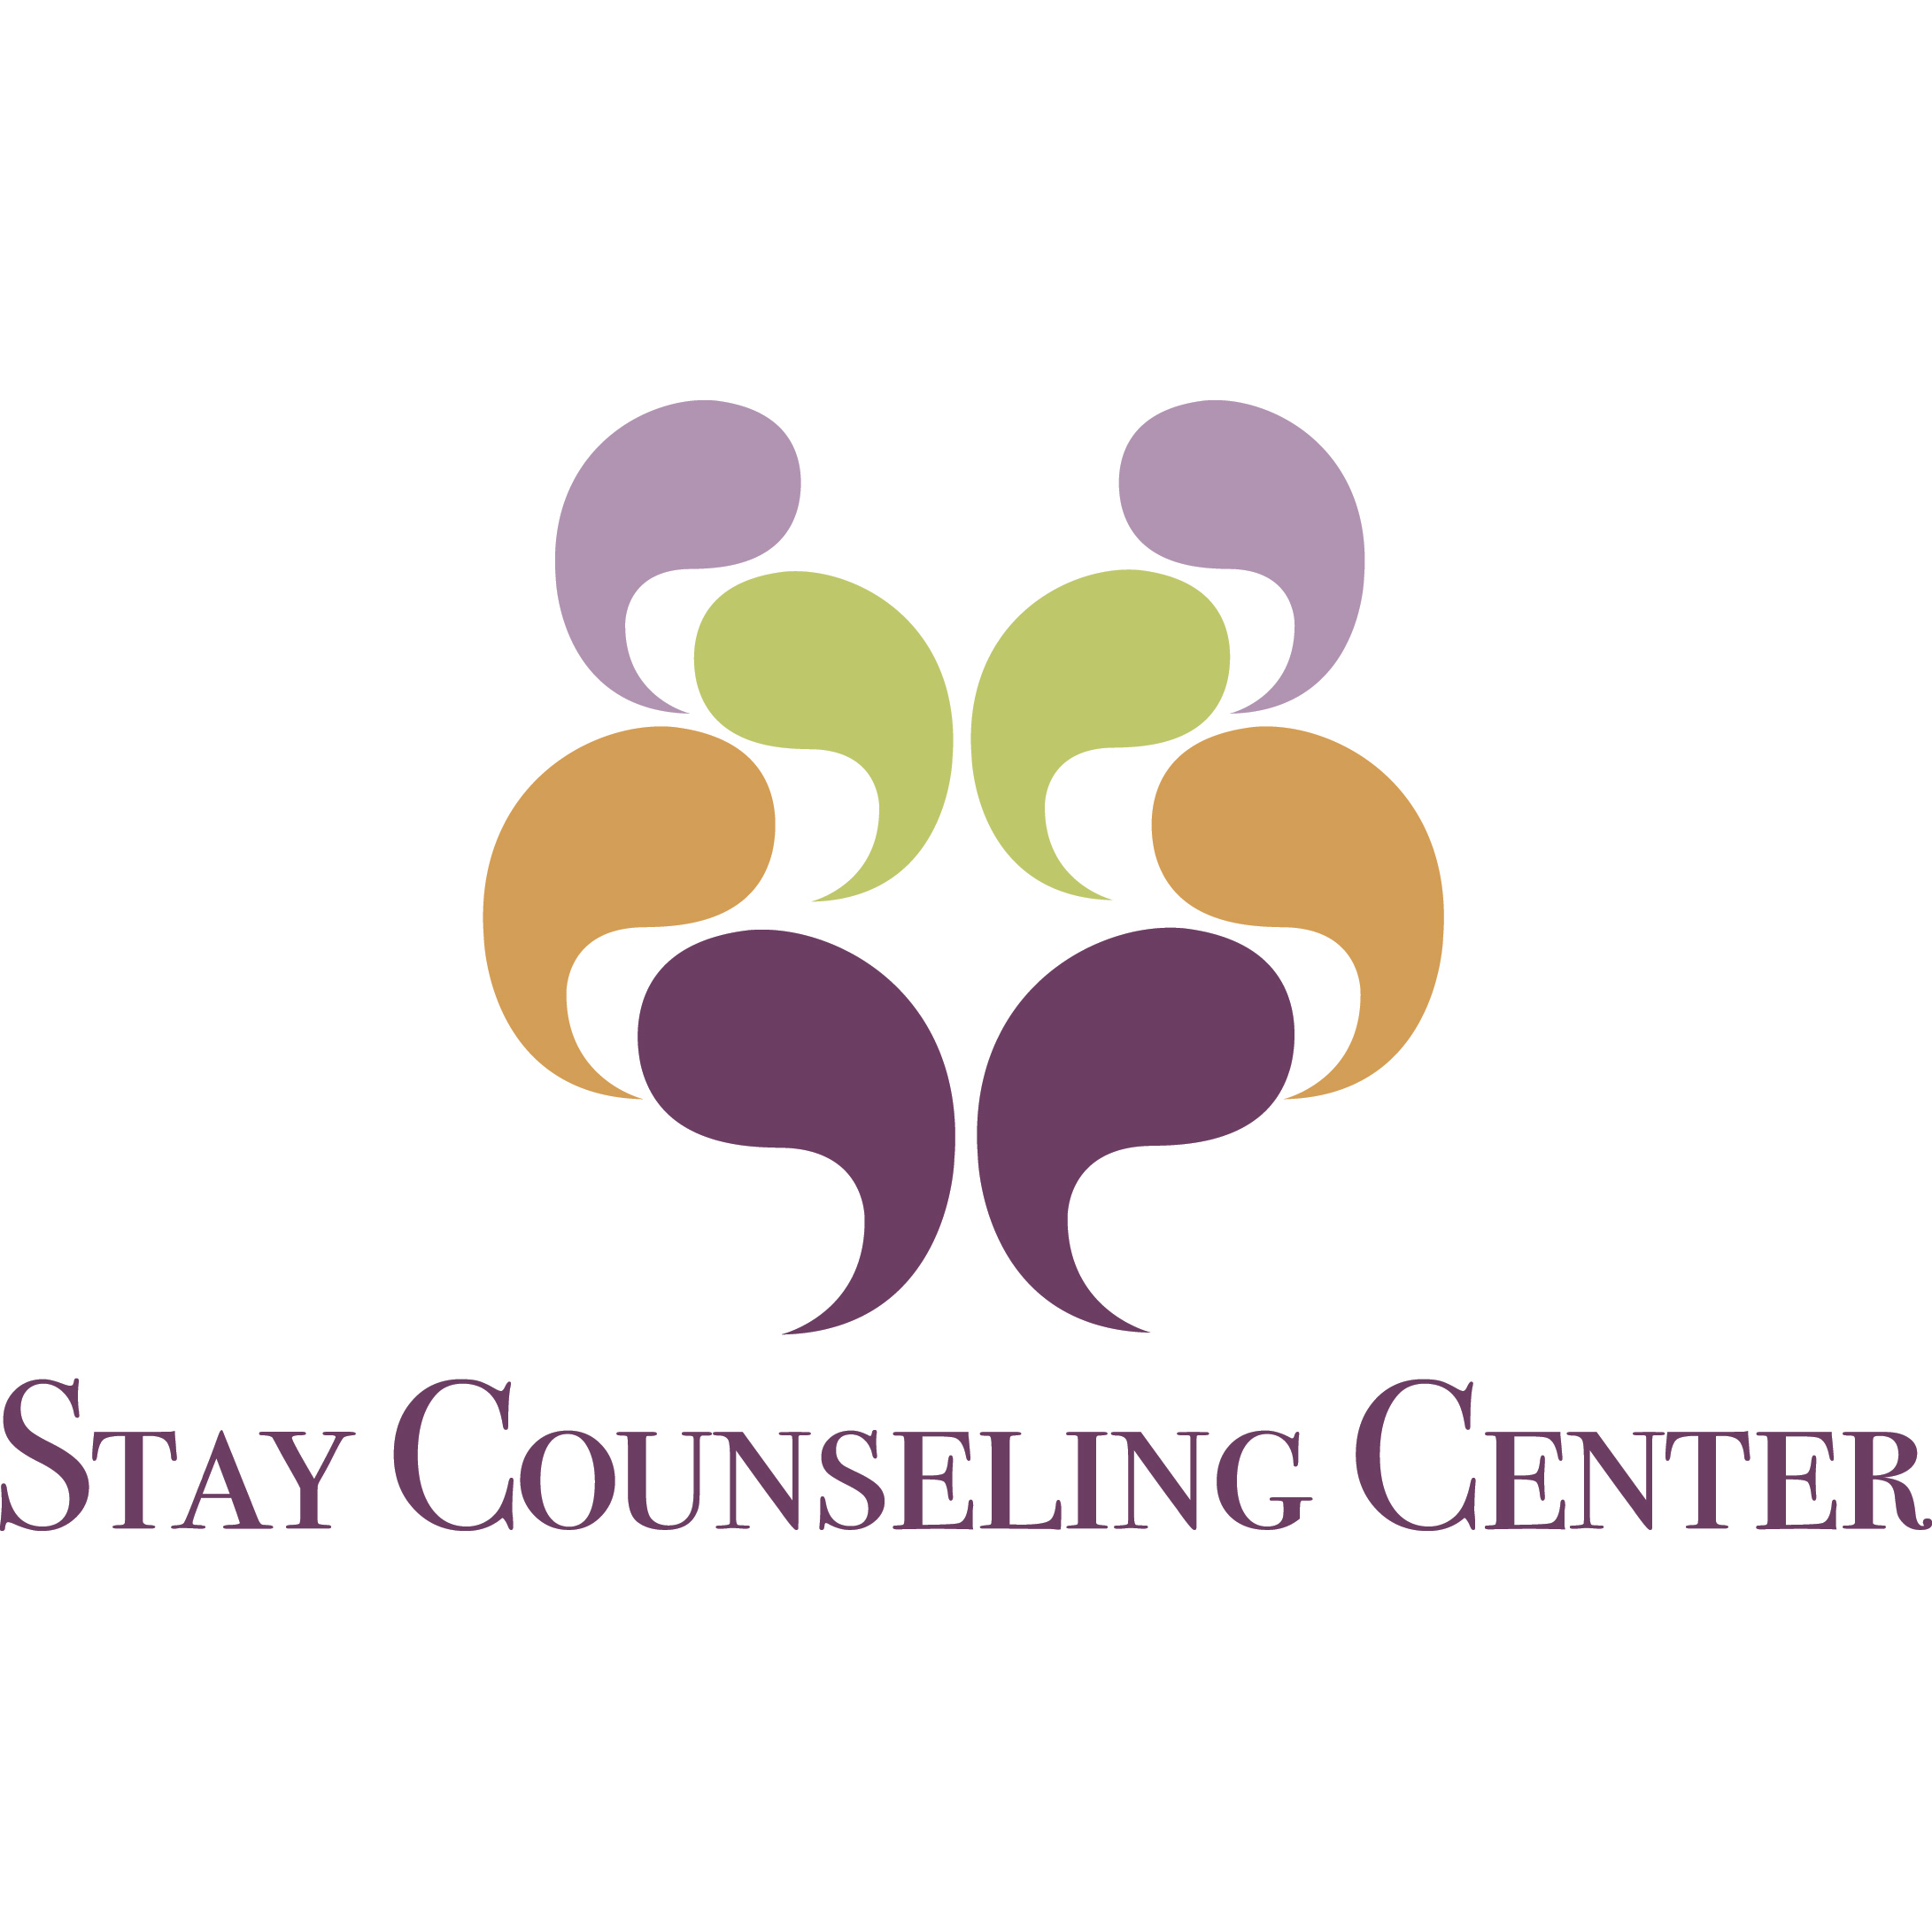 Stay Counseling Center